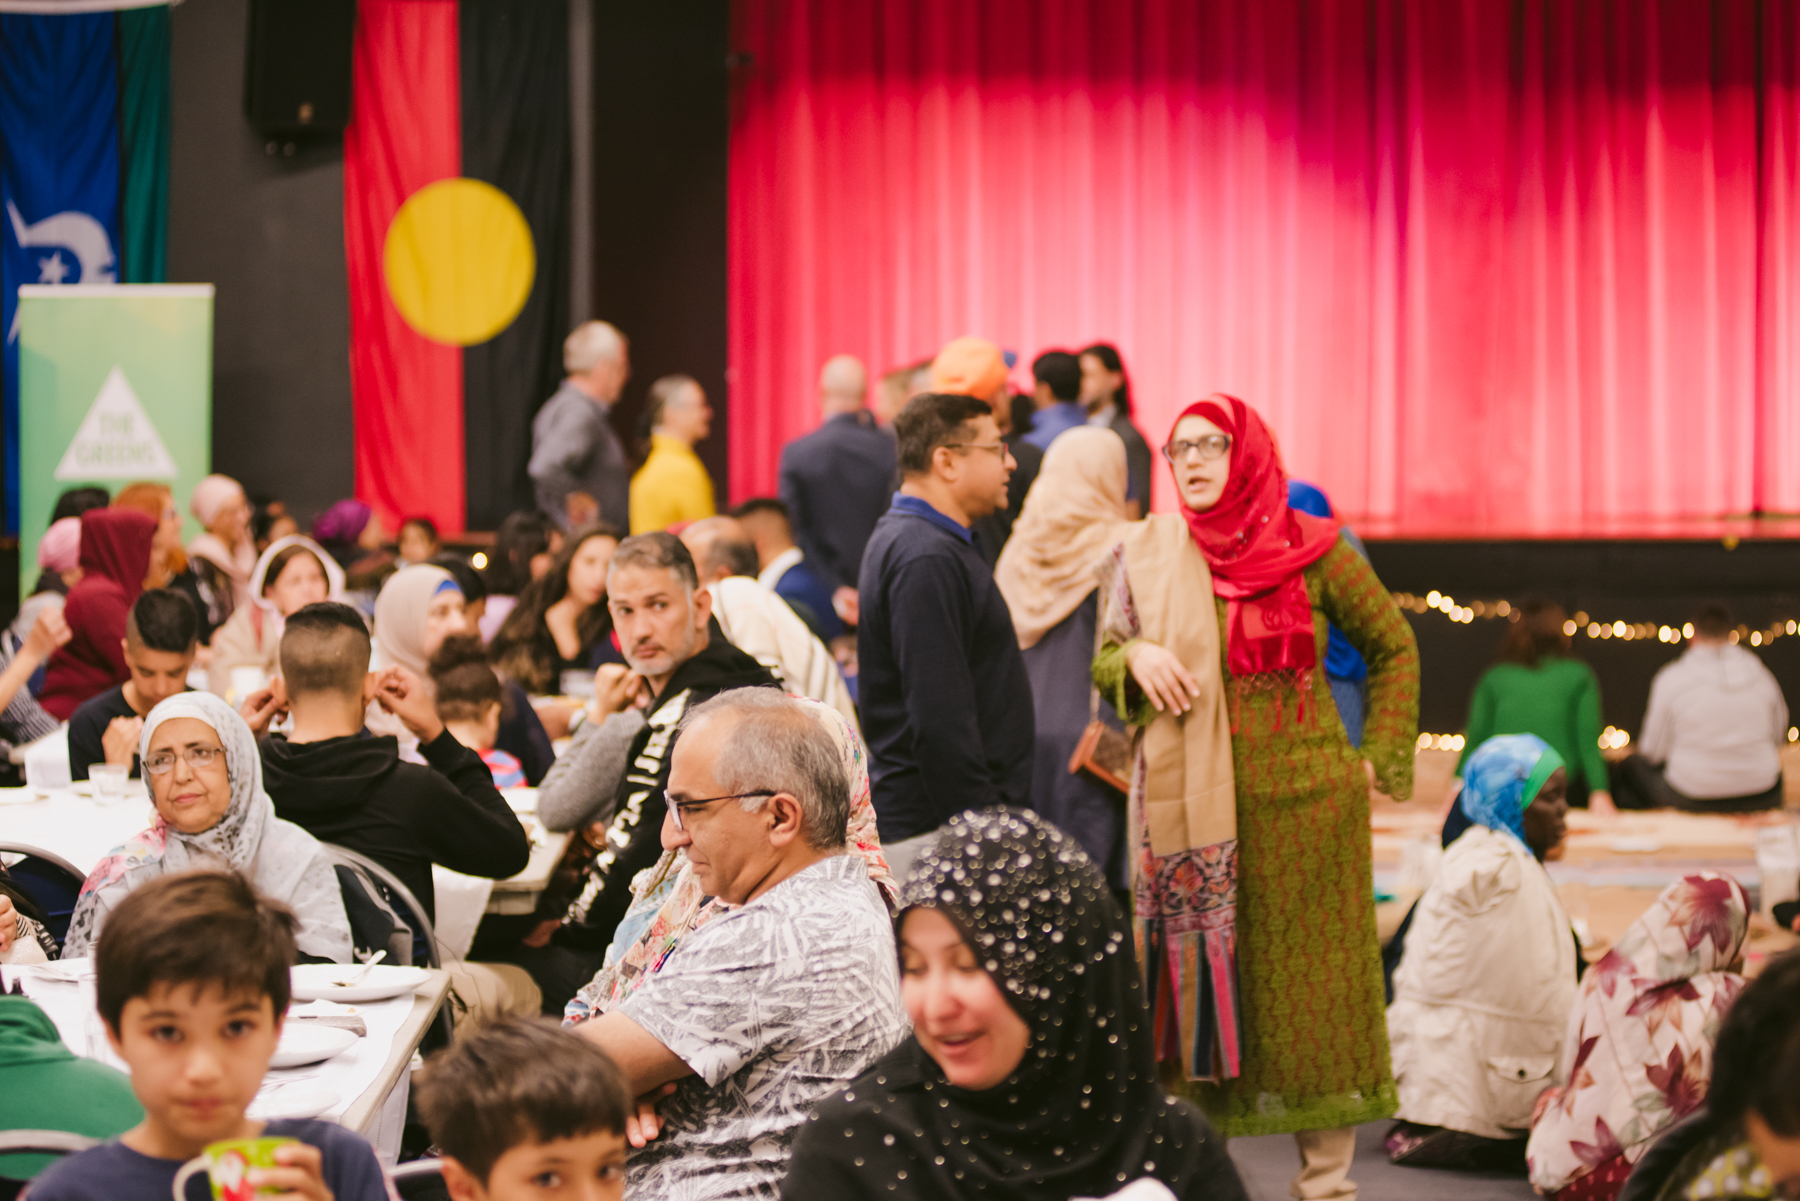 A Community Iftar Dinner thrown by the Australian Greens in May, 2019.